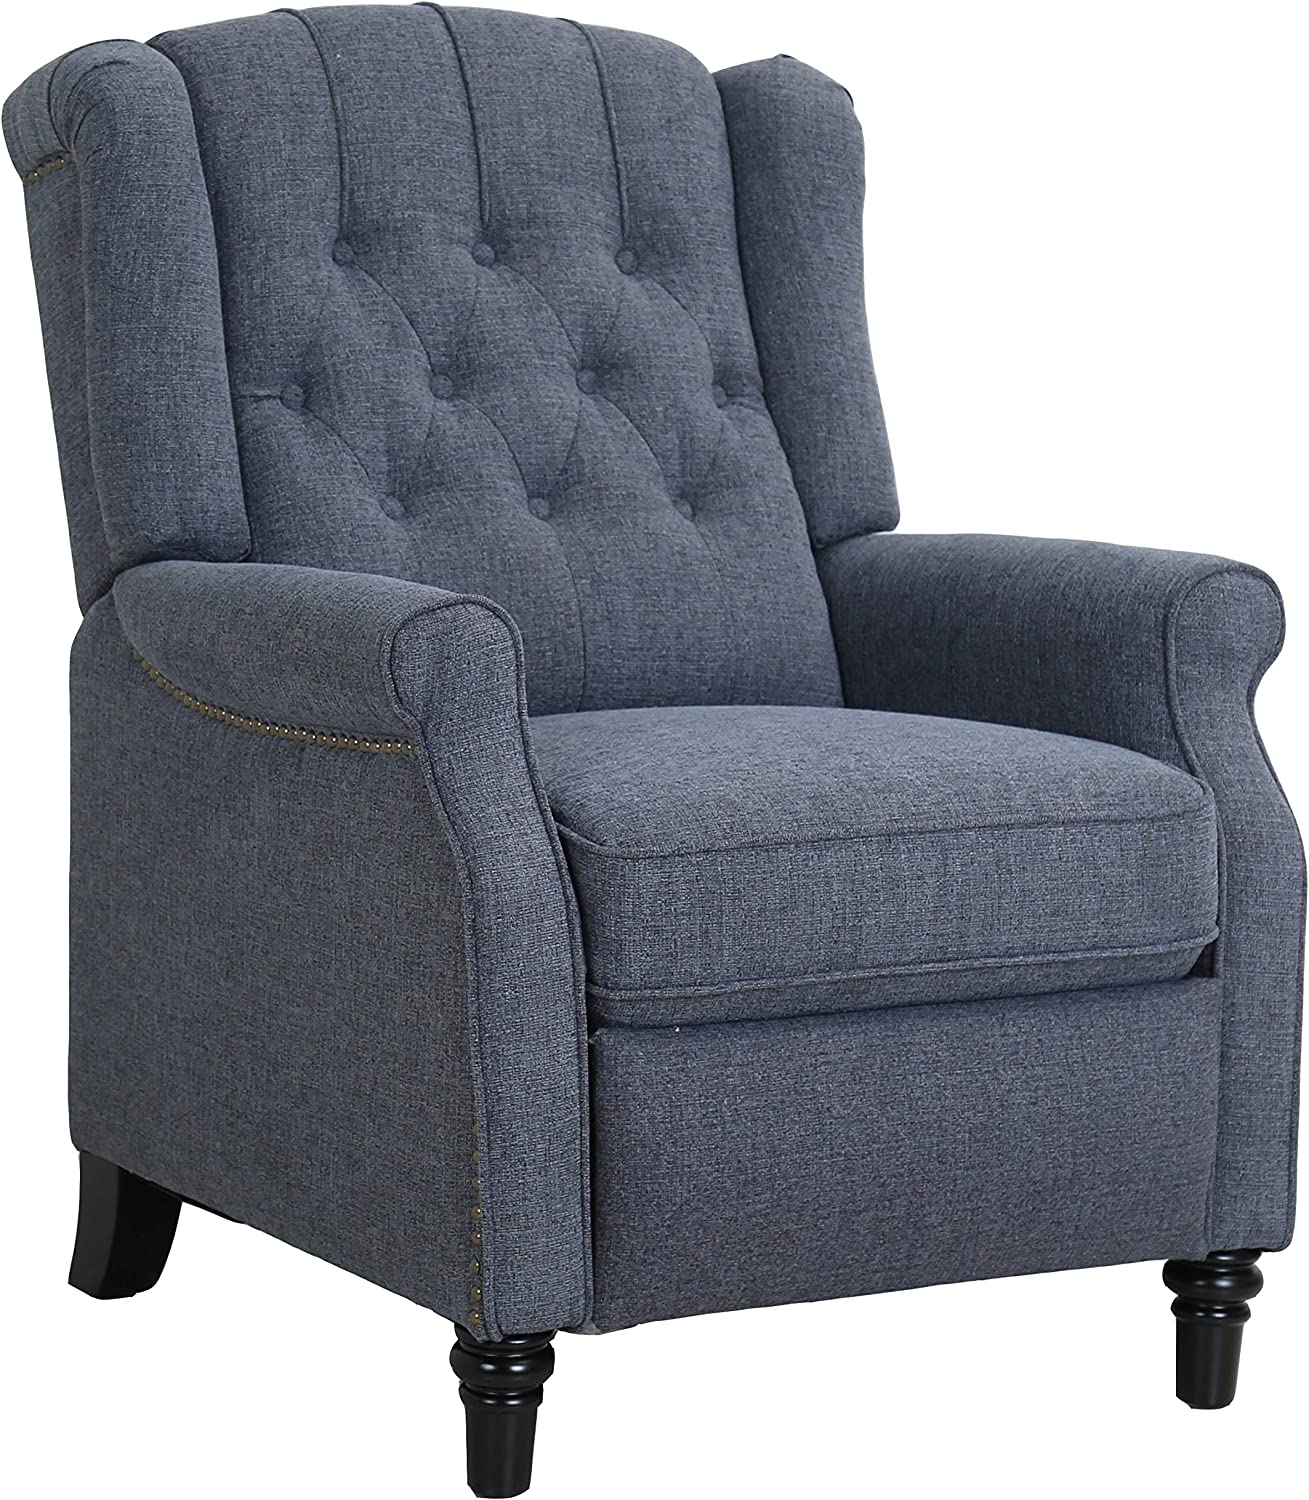 Amazon Brand – Ravenna Home Pritchard Classic Recliner, 29.1